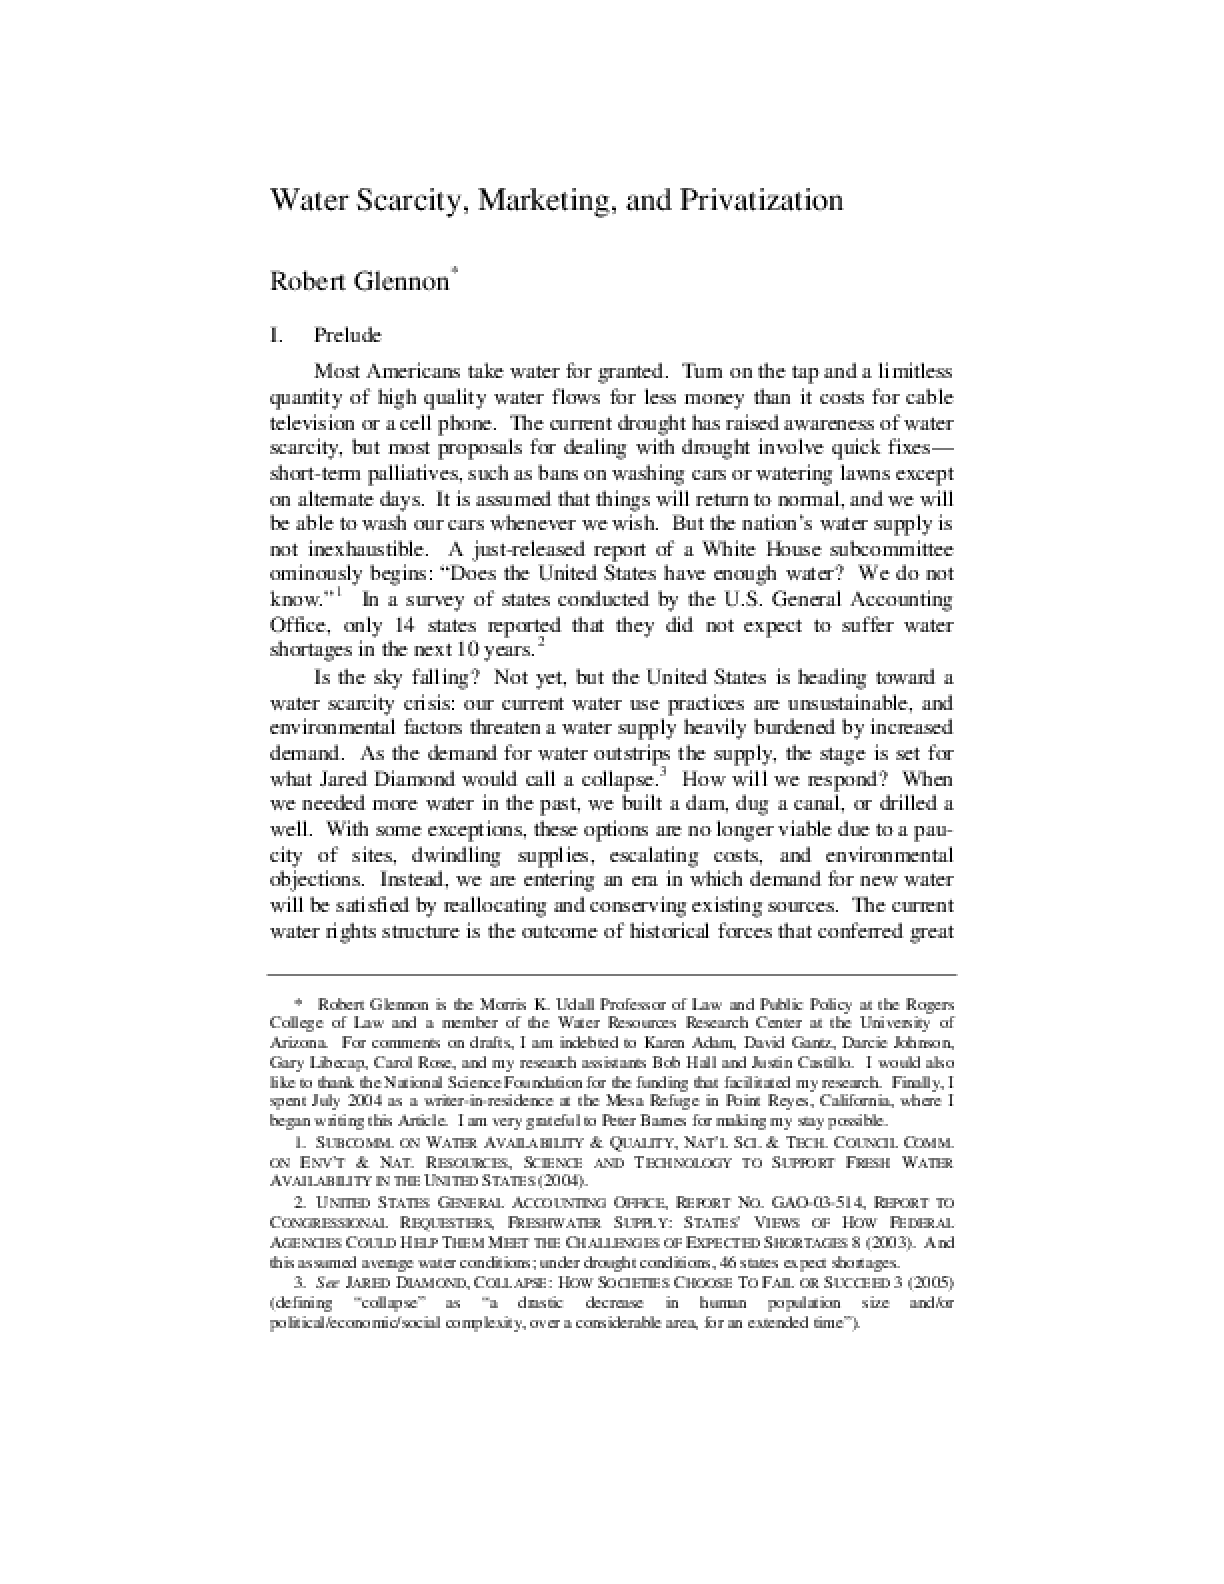 Water Scarcity, Marketing, and Privatization